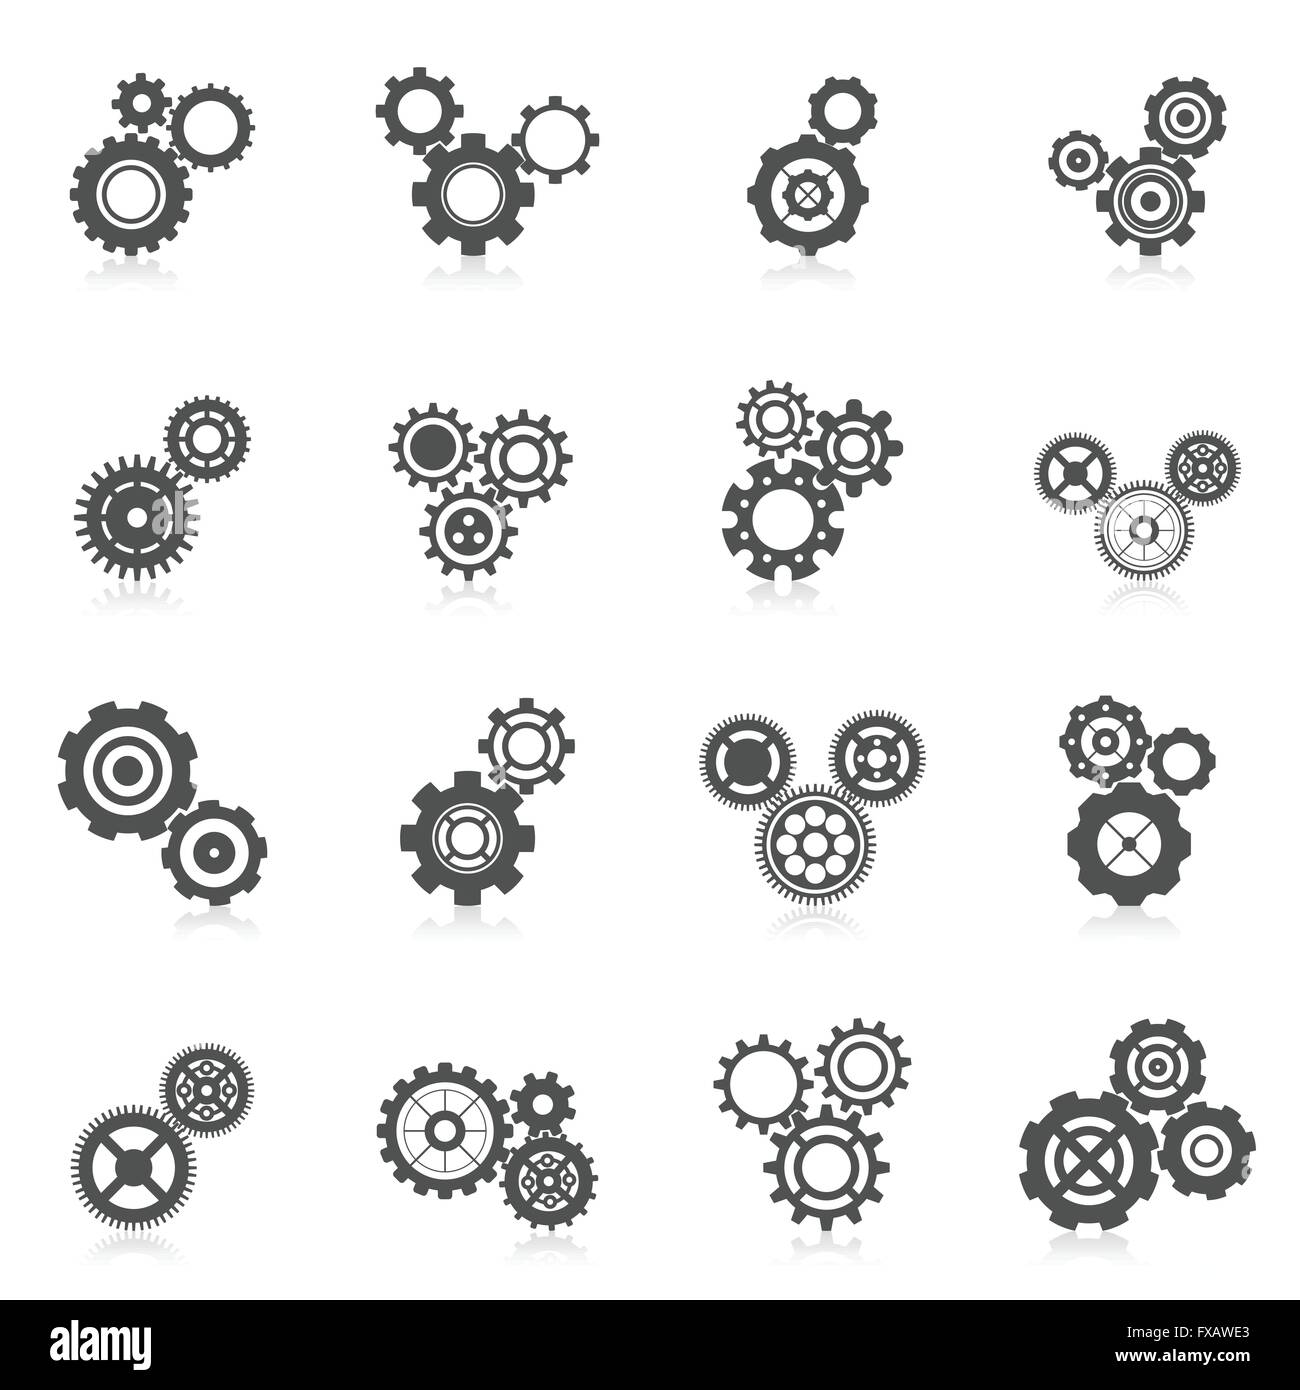 Motor Car Factory Black And White Stock Photos Images Alamy Exploded Diagram View Maranello Classic Parts Cog Wheel Icon Image